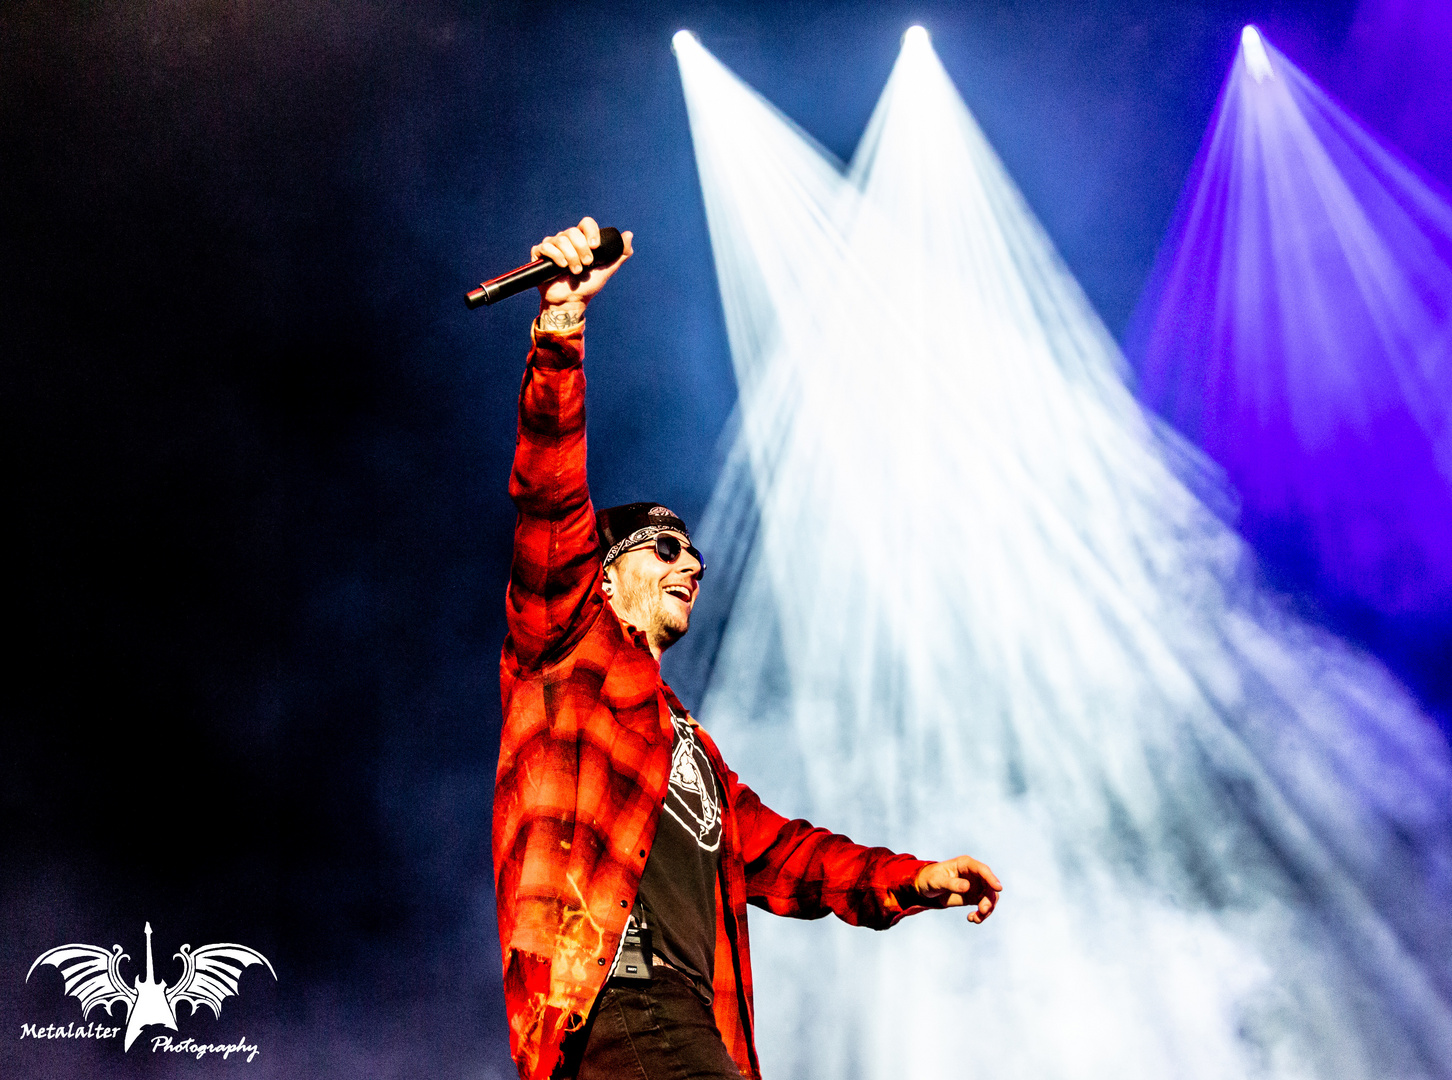 M Shadows at Rockfest 2018